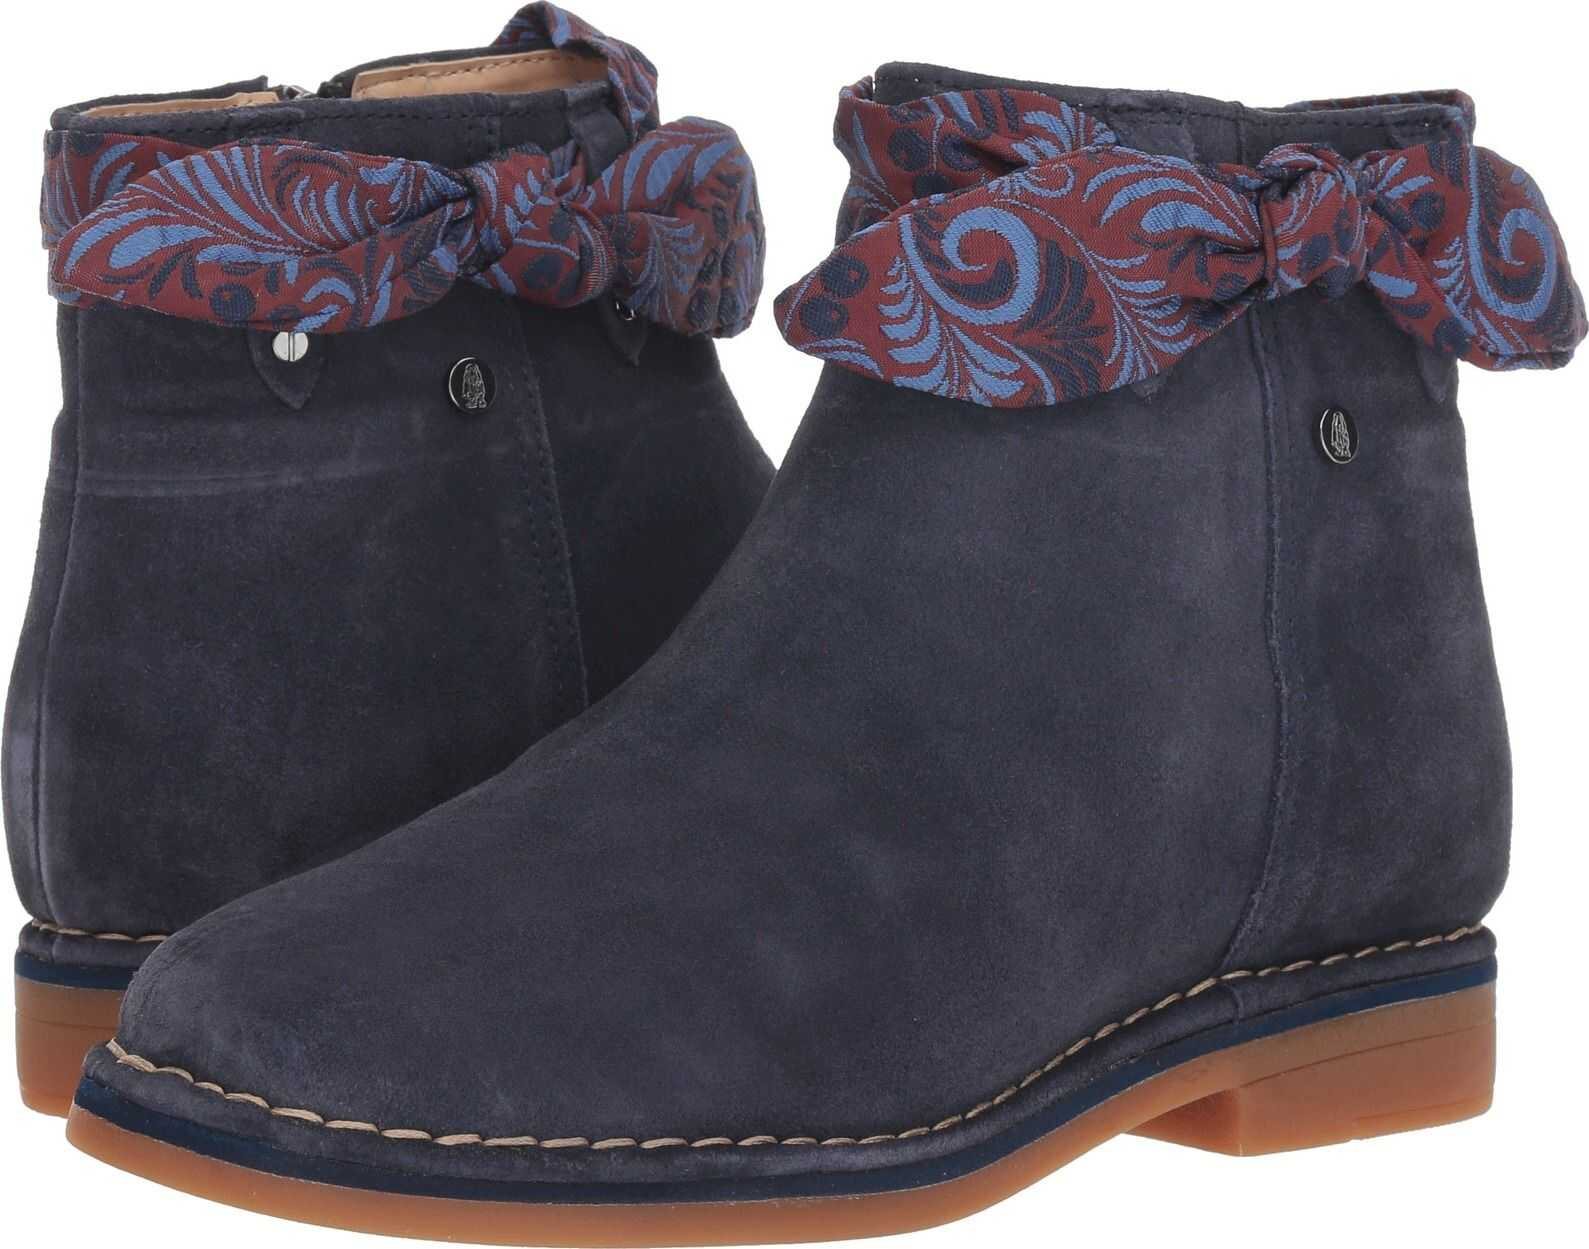 Hush Puppies Catelyn Bow Boot Navy Suede